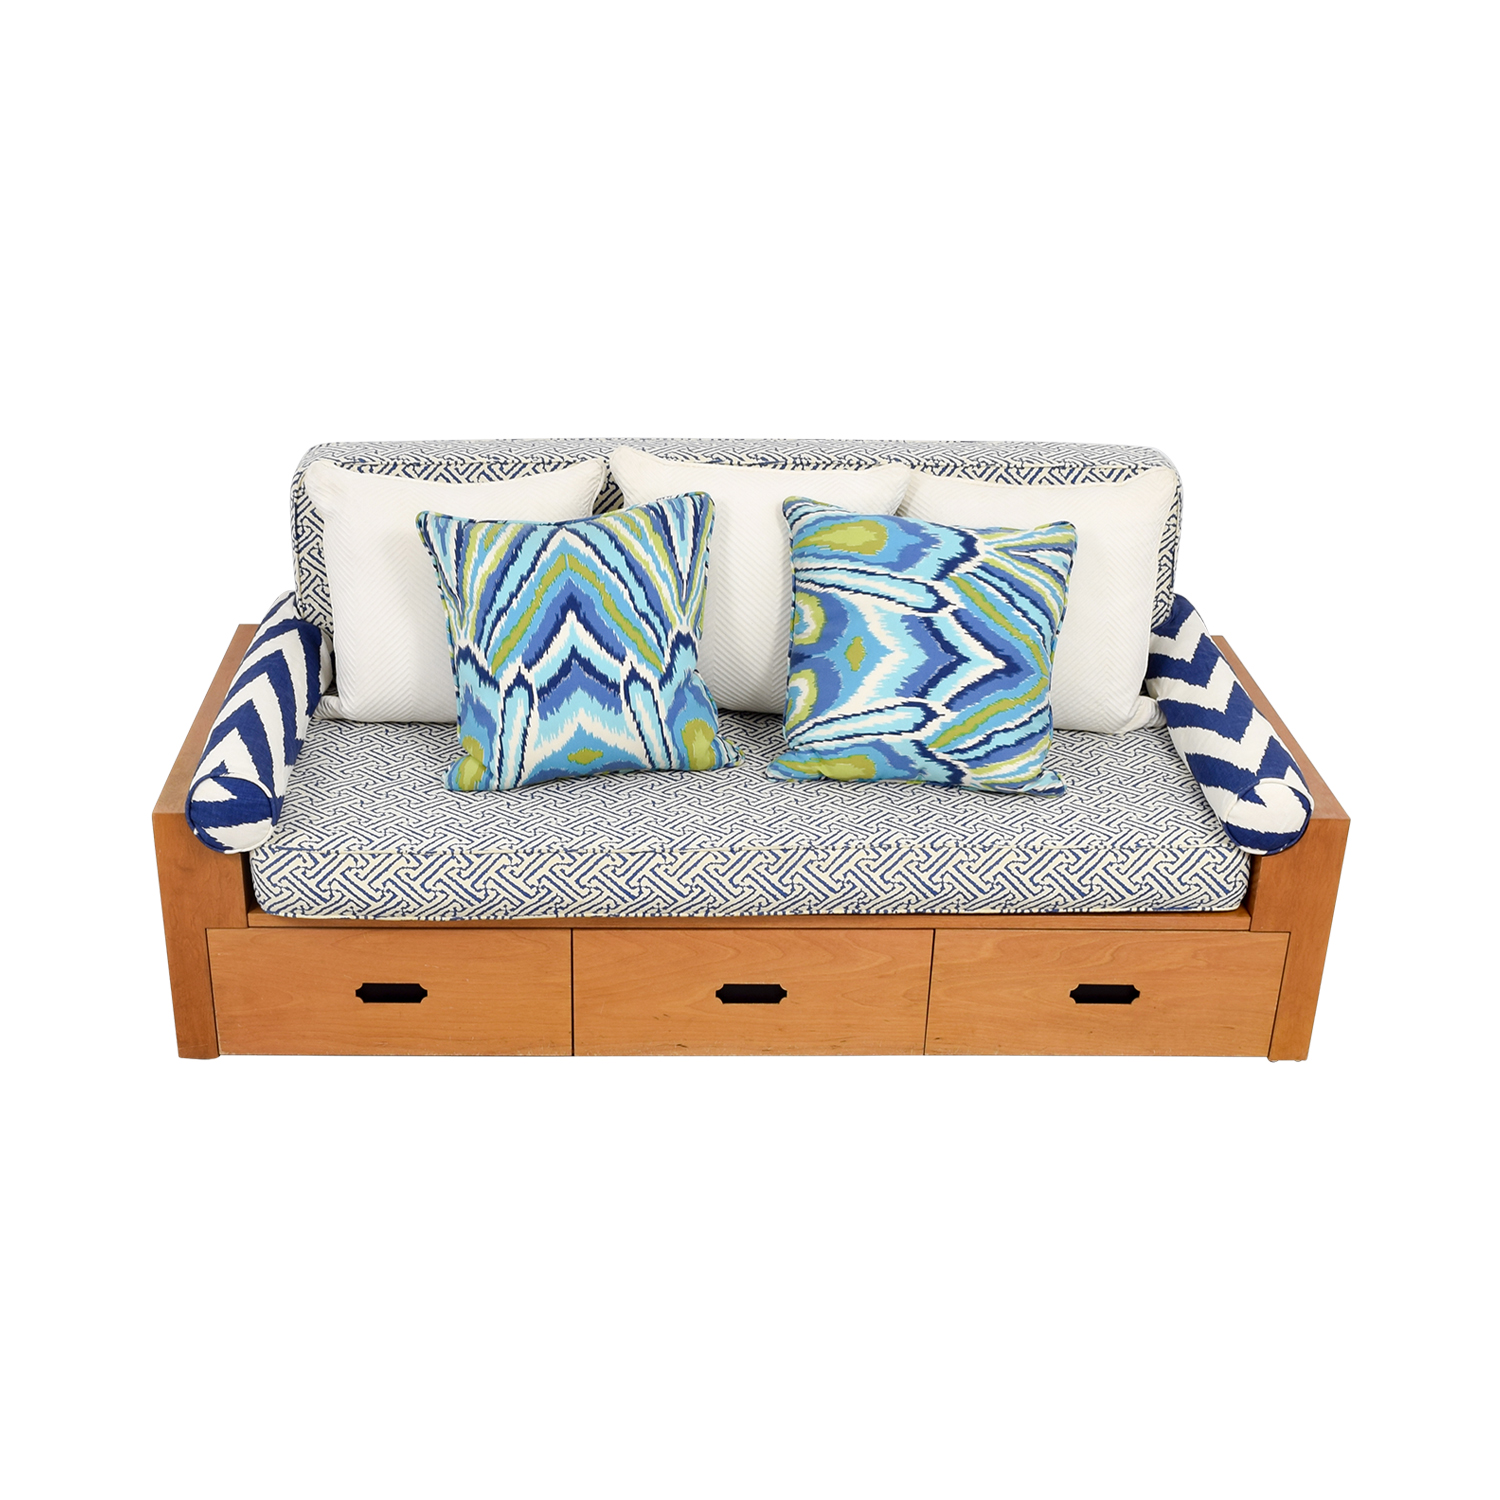 Custom Wood Daybed with Storage dimensions